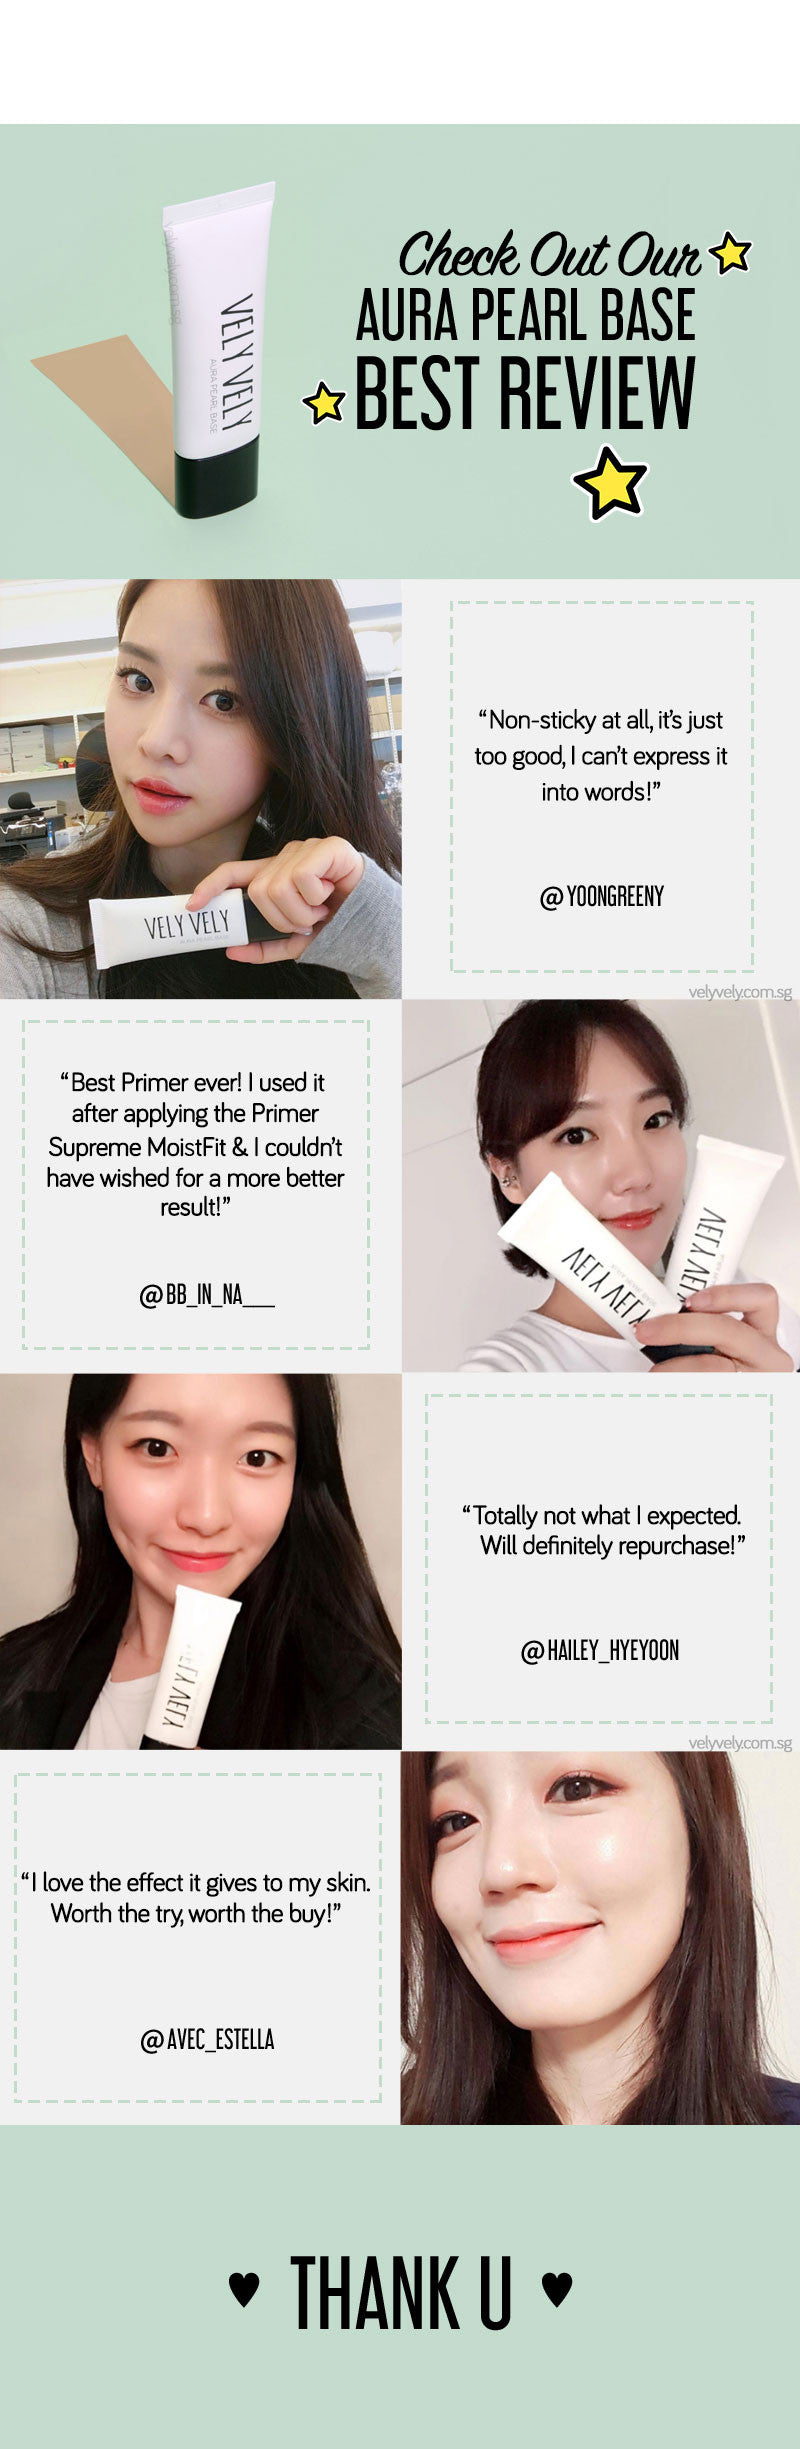 Check out the Aura Pearl Base Primer's positive reviews!